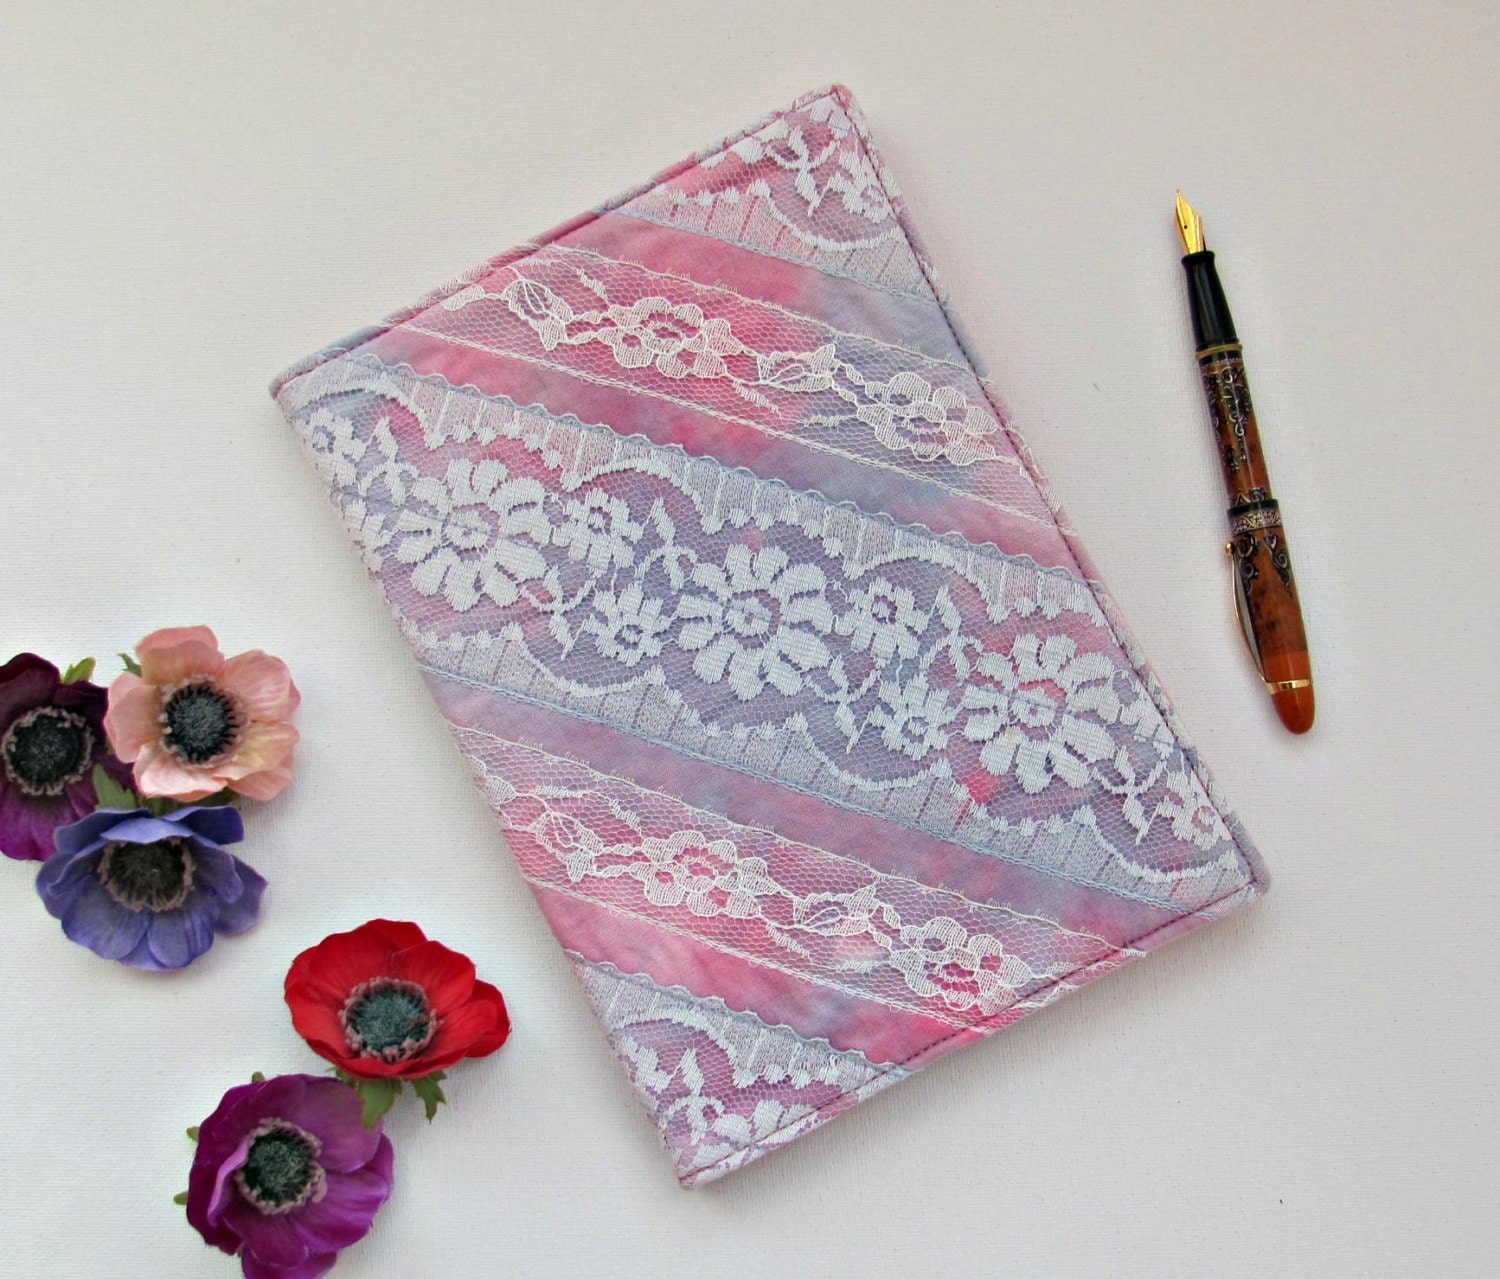 Book Cover Material Key : Refillable fabric book sleeve a journal sketchbook diary